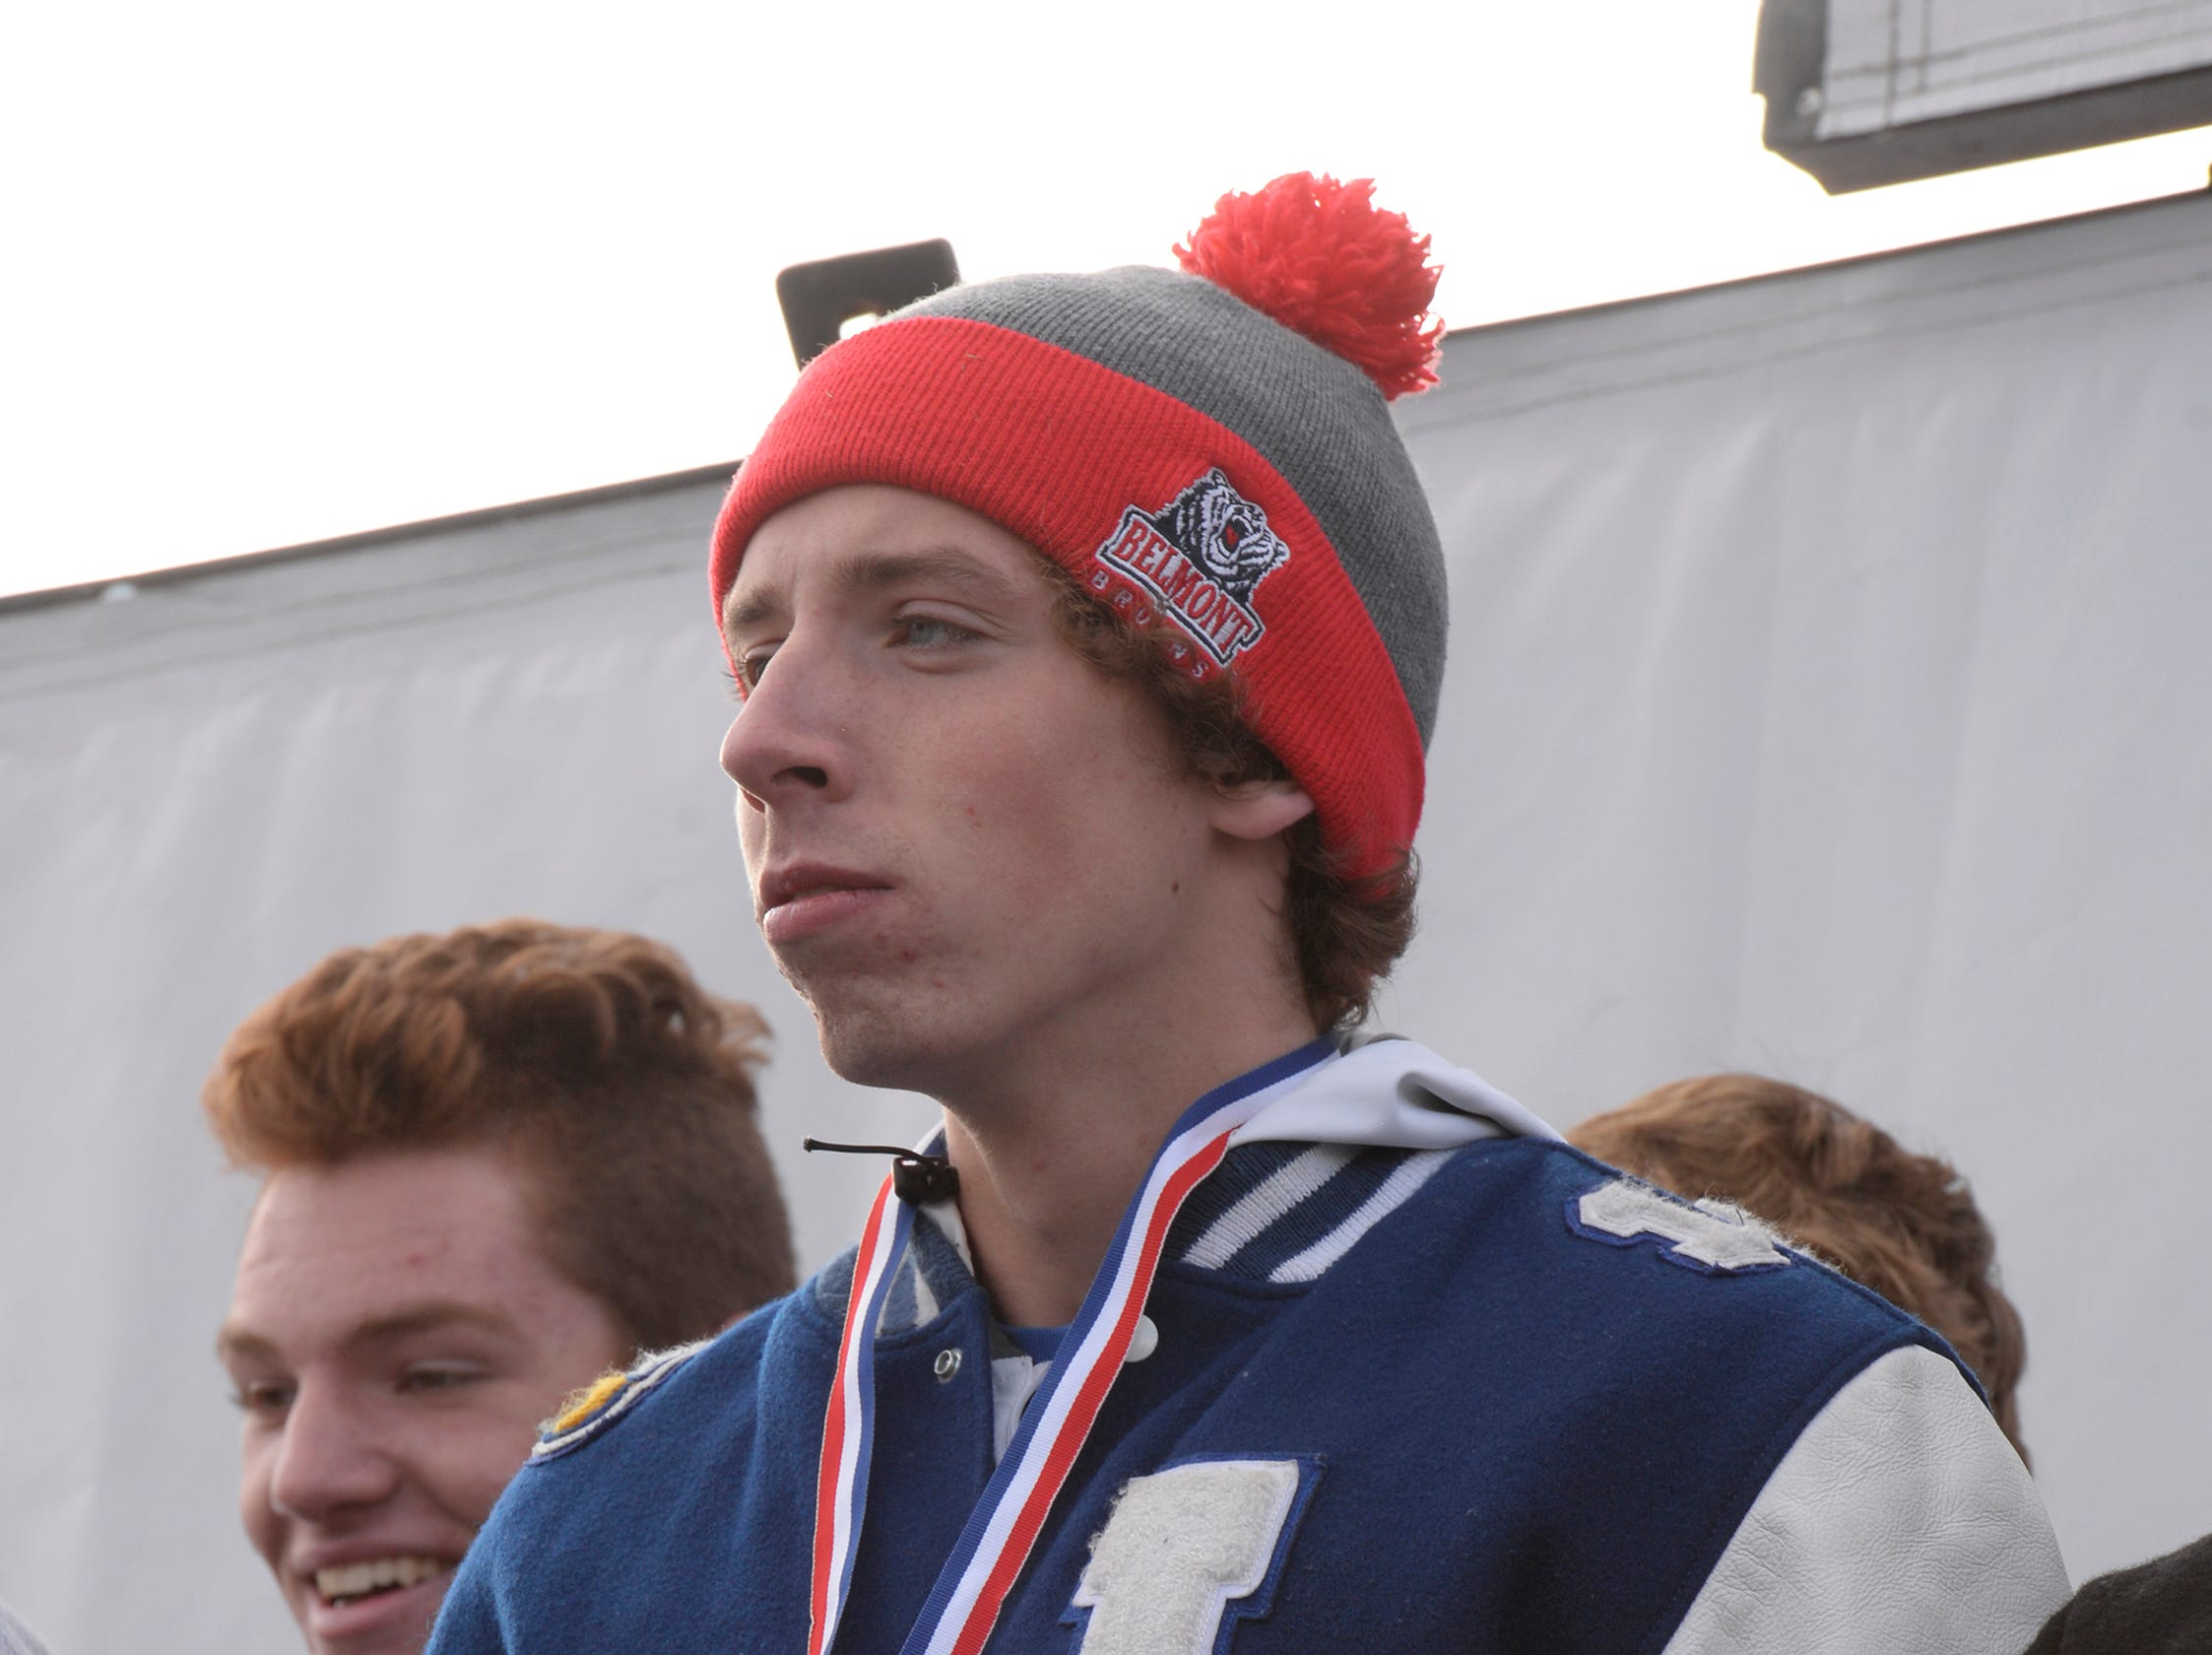 Lakeland's Harrison Grzymkowski finished third with a time of 15:32.3 at the Division 1 2018 cross country finals at Michigan International Speedway.